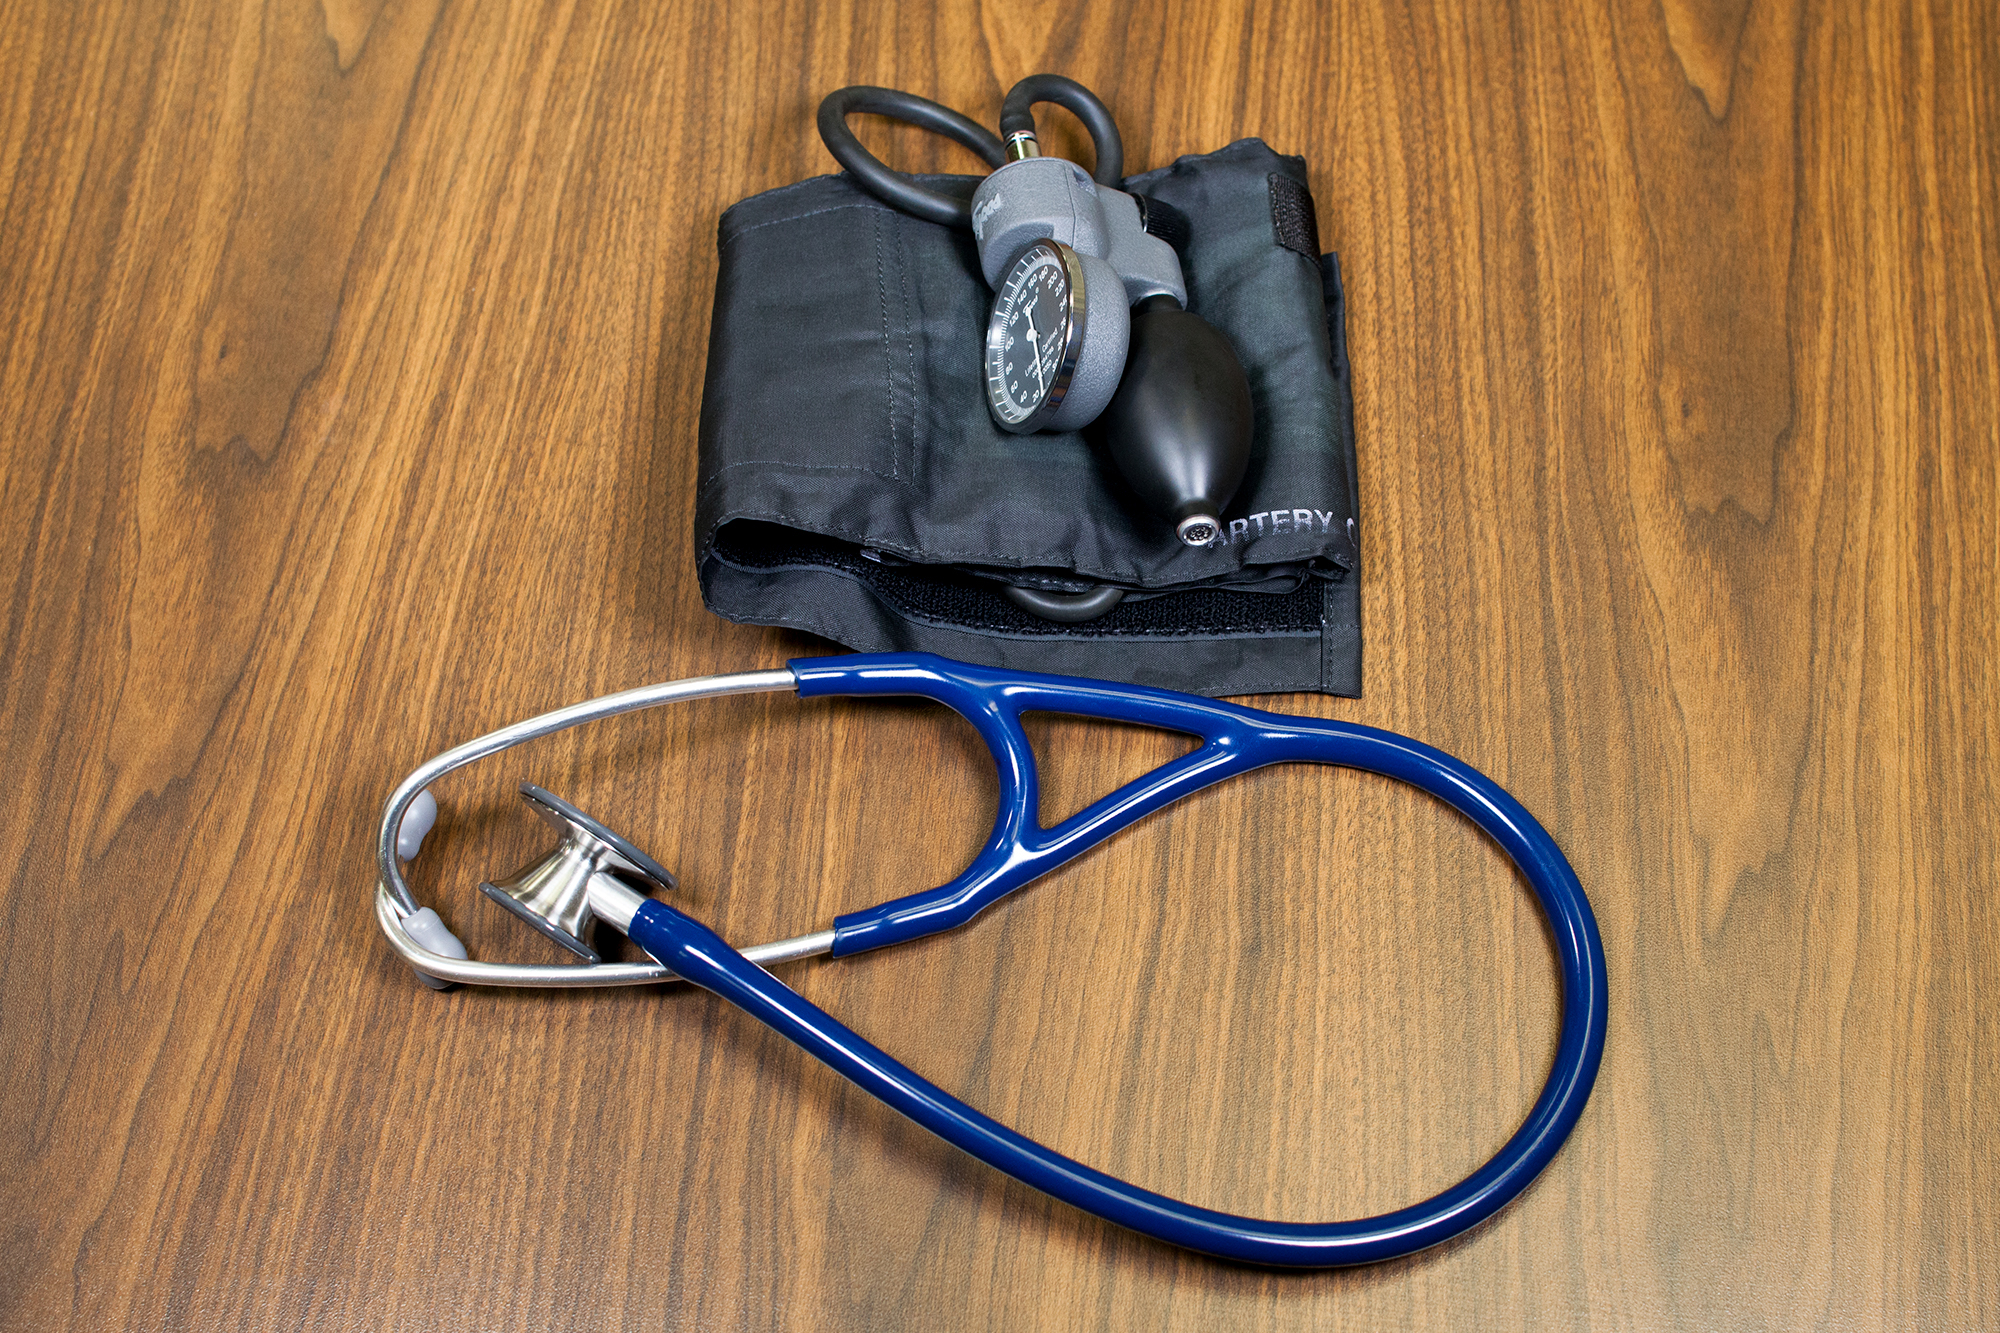 Manual blood pressure equipment including a blood pressure cuff with a sphygmomanometer and a stethoscope